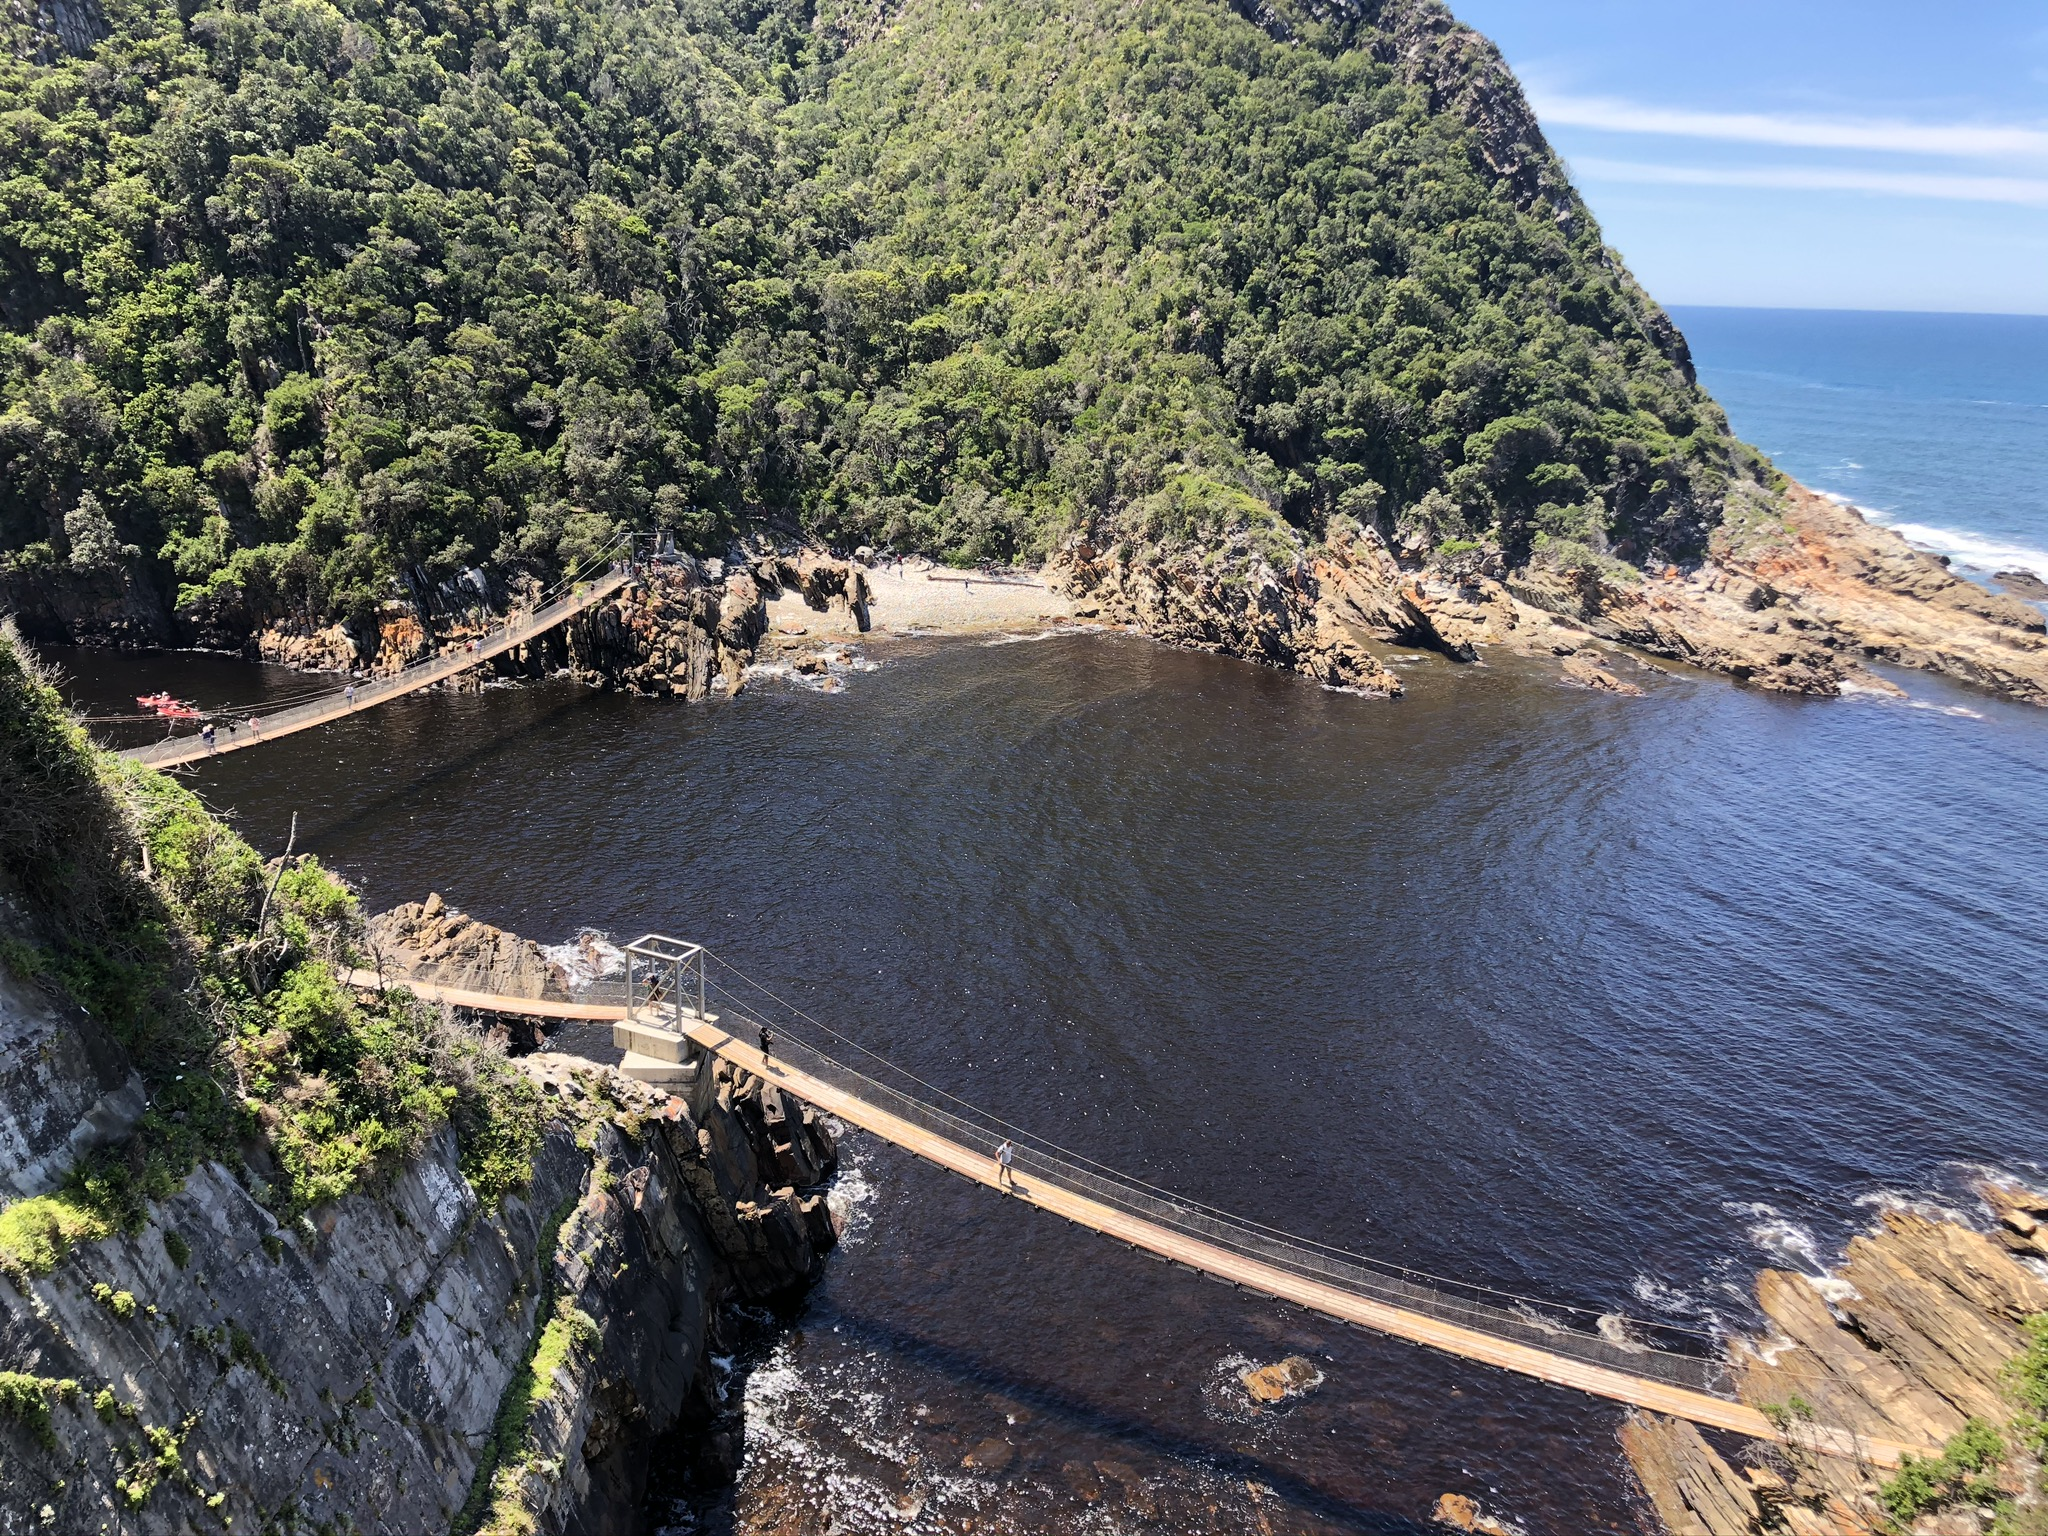 Unterwegs in Storms River Mouth